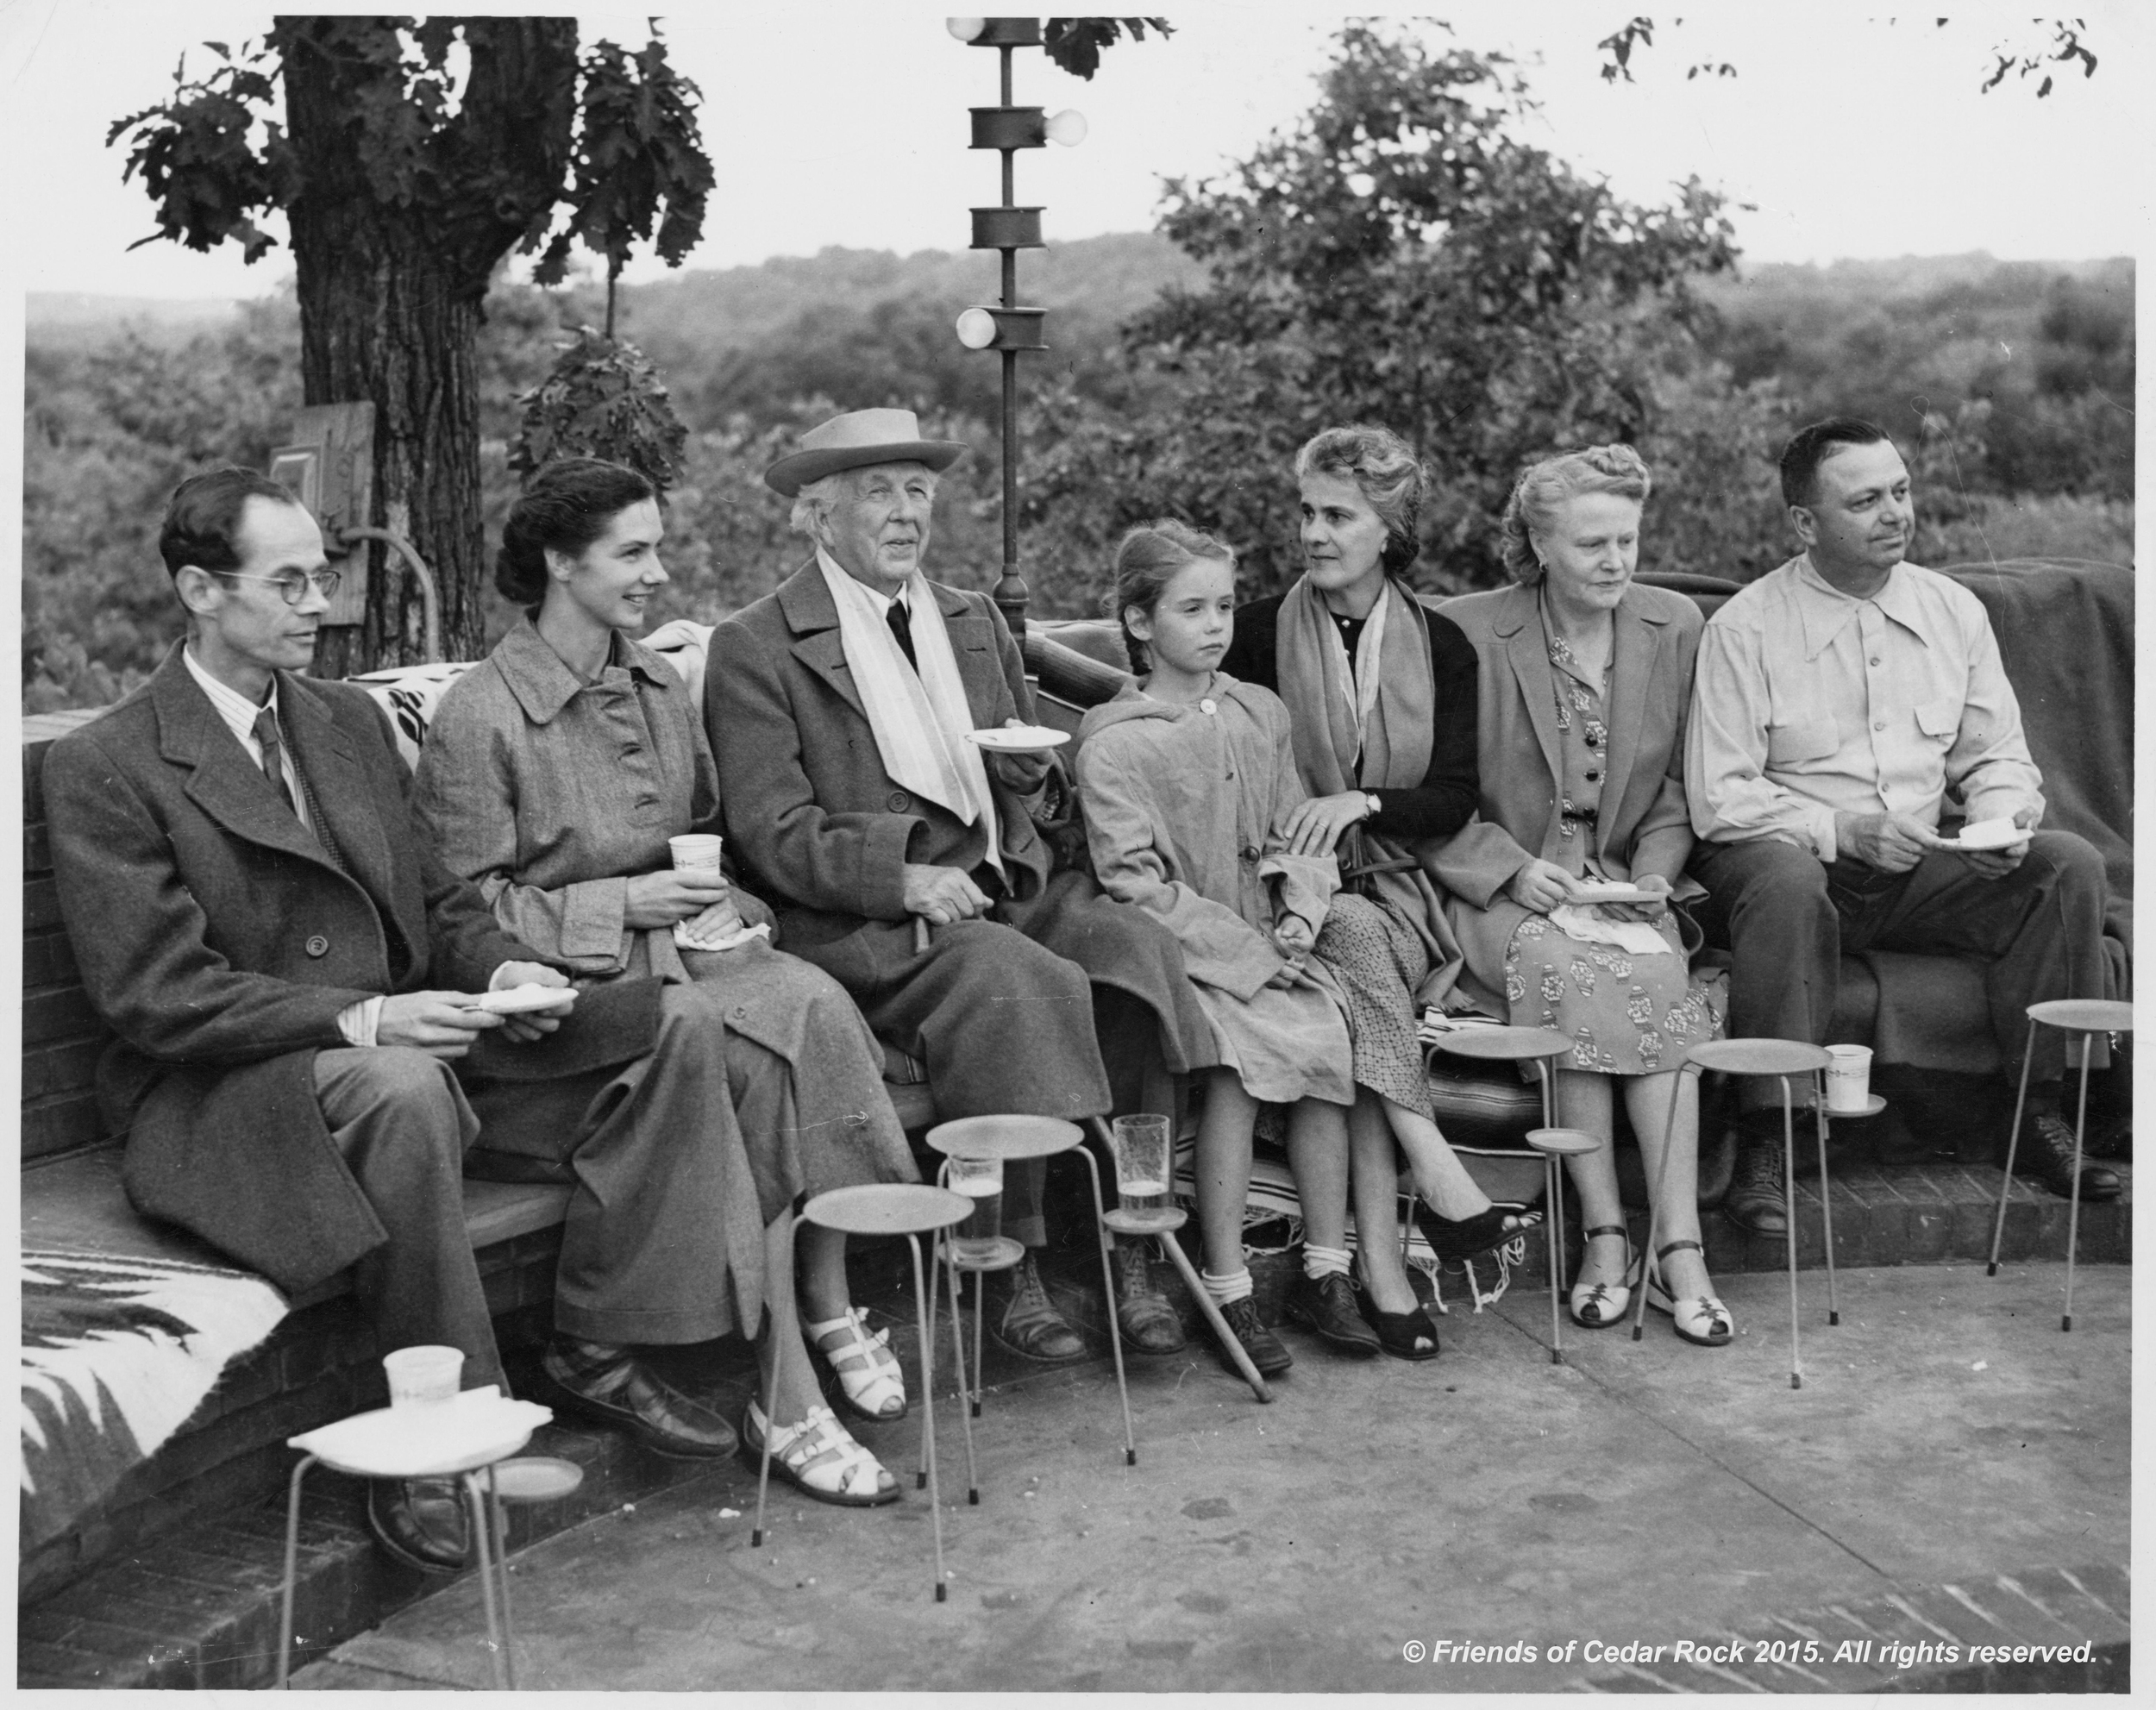 Lord and Lady Pentland , Frank Lloyd Wright, Olgivana Wright, Agnes and Lowell Walter celebrate the completion of the home around the council fire at Cedar Rock.